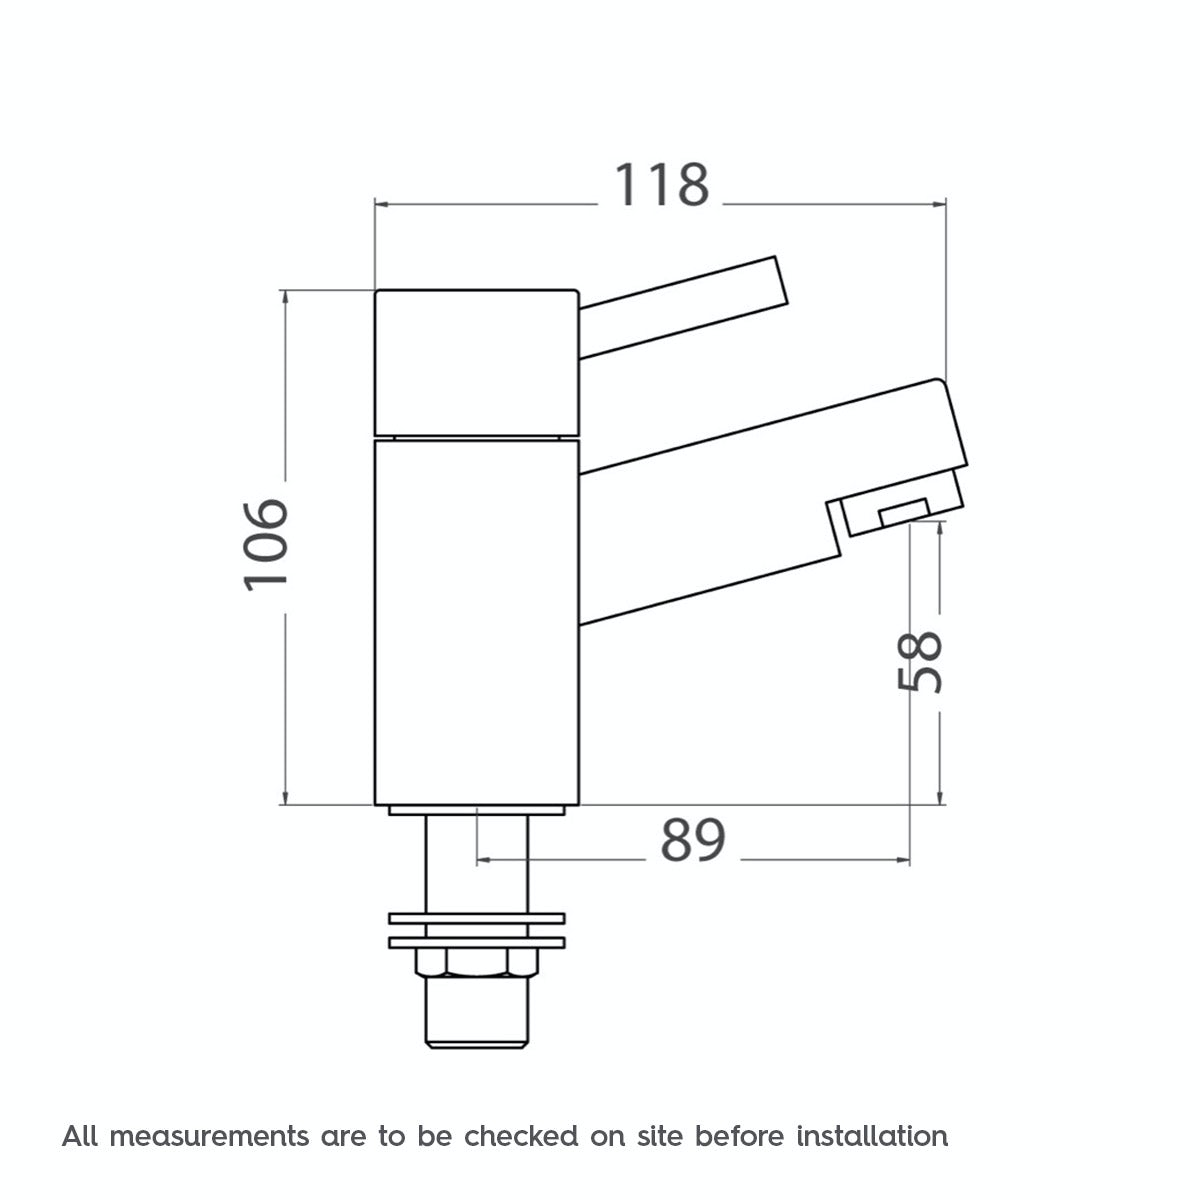 Dimensions for Matrix basin pillar taps